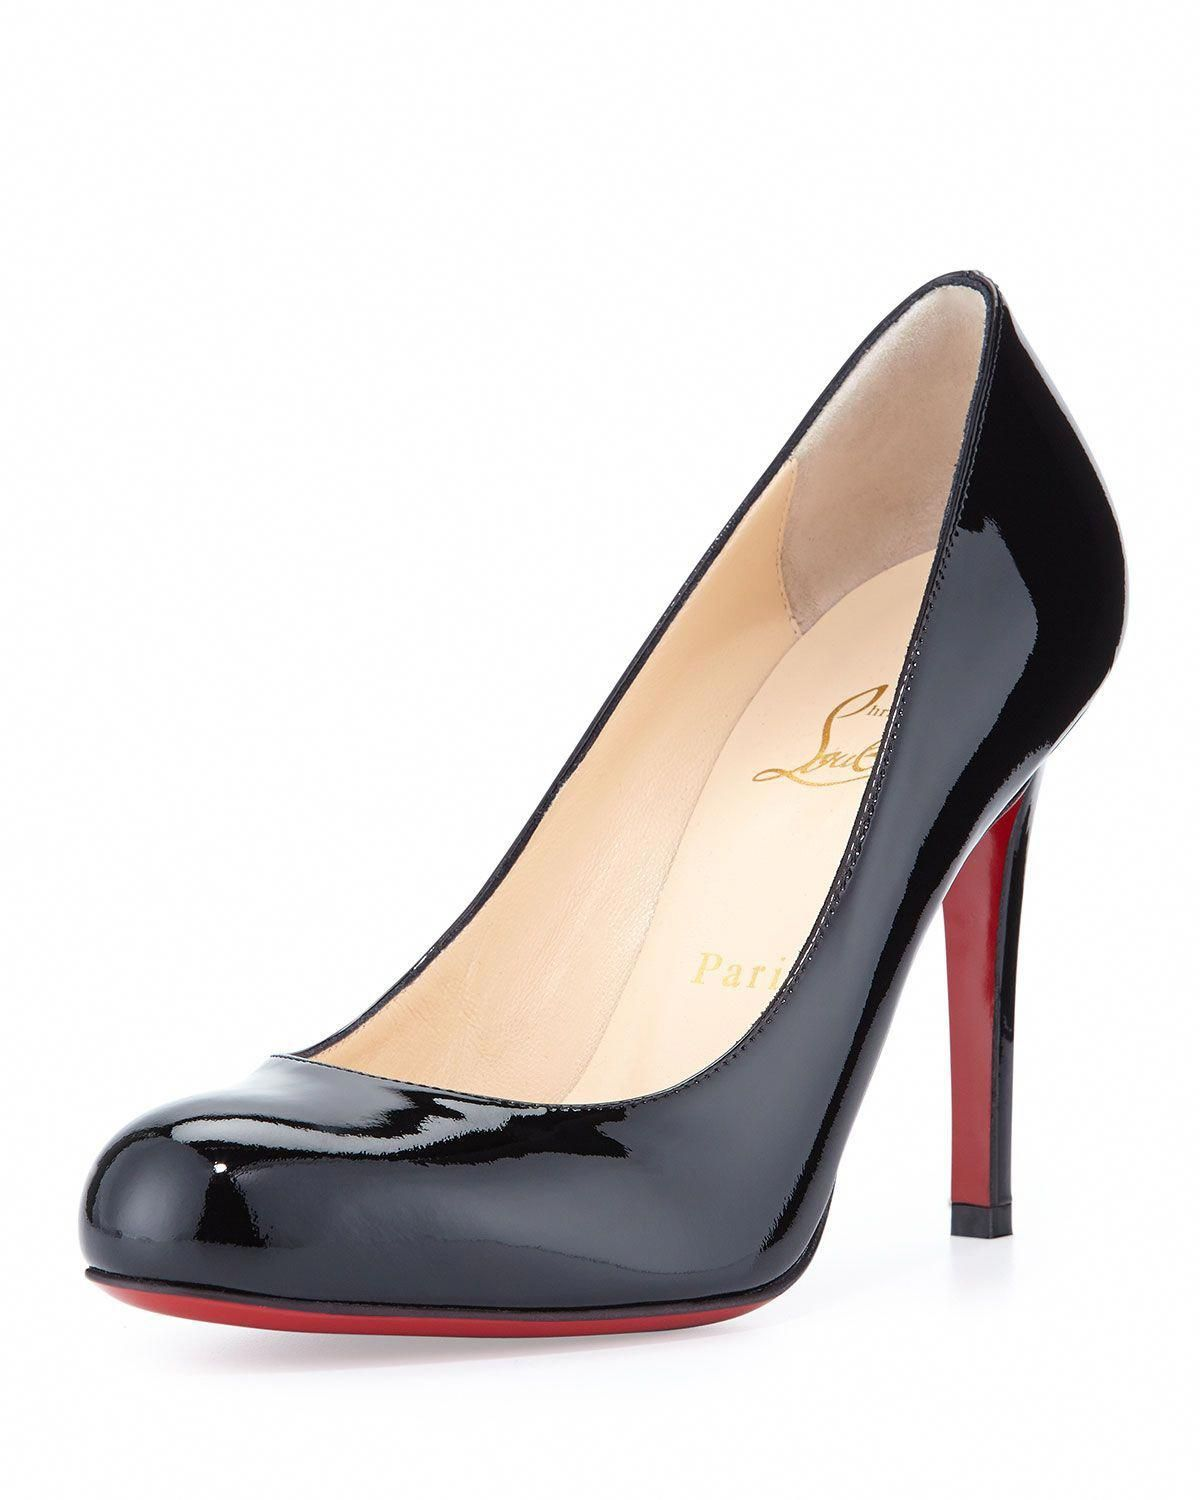 82a216336251 Christian Louboutin Simple Patent Red Sole Pump